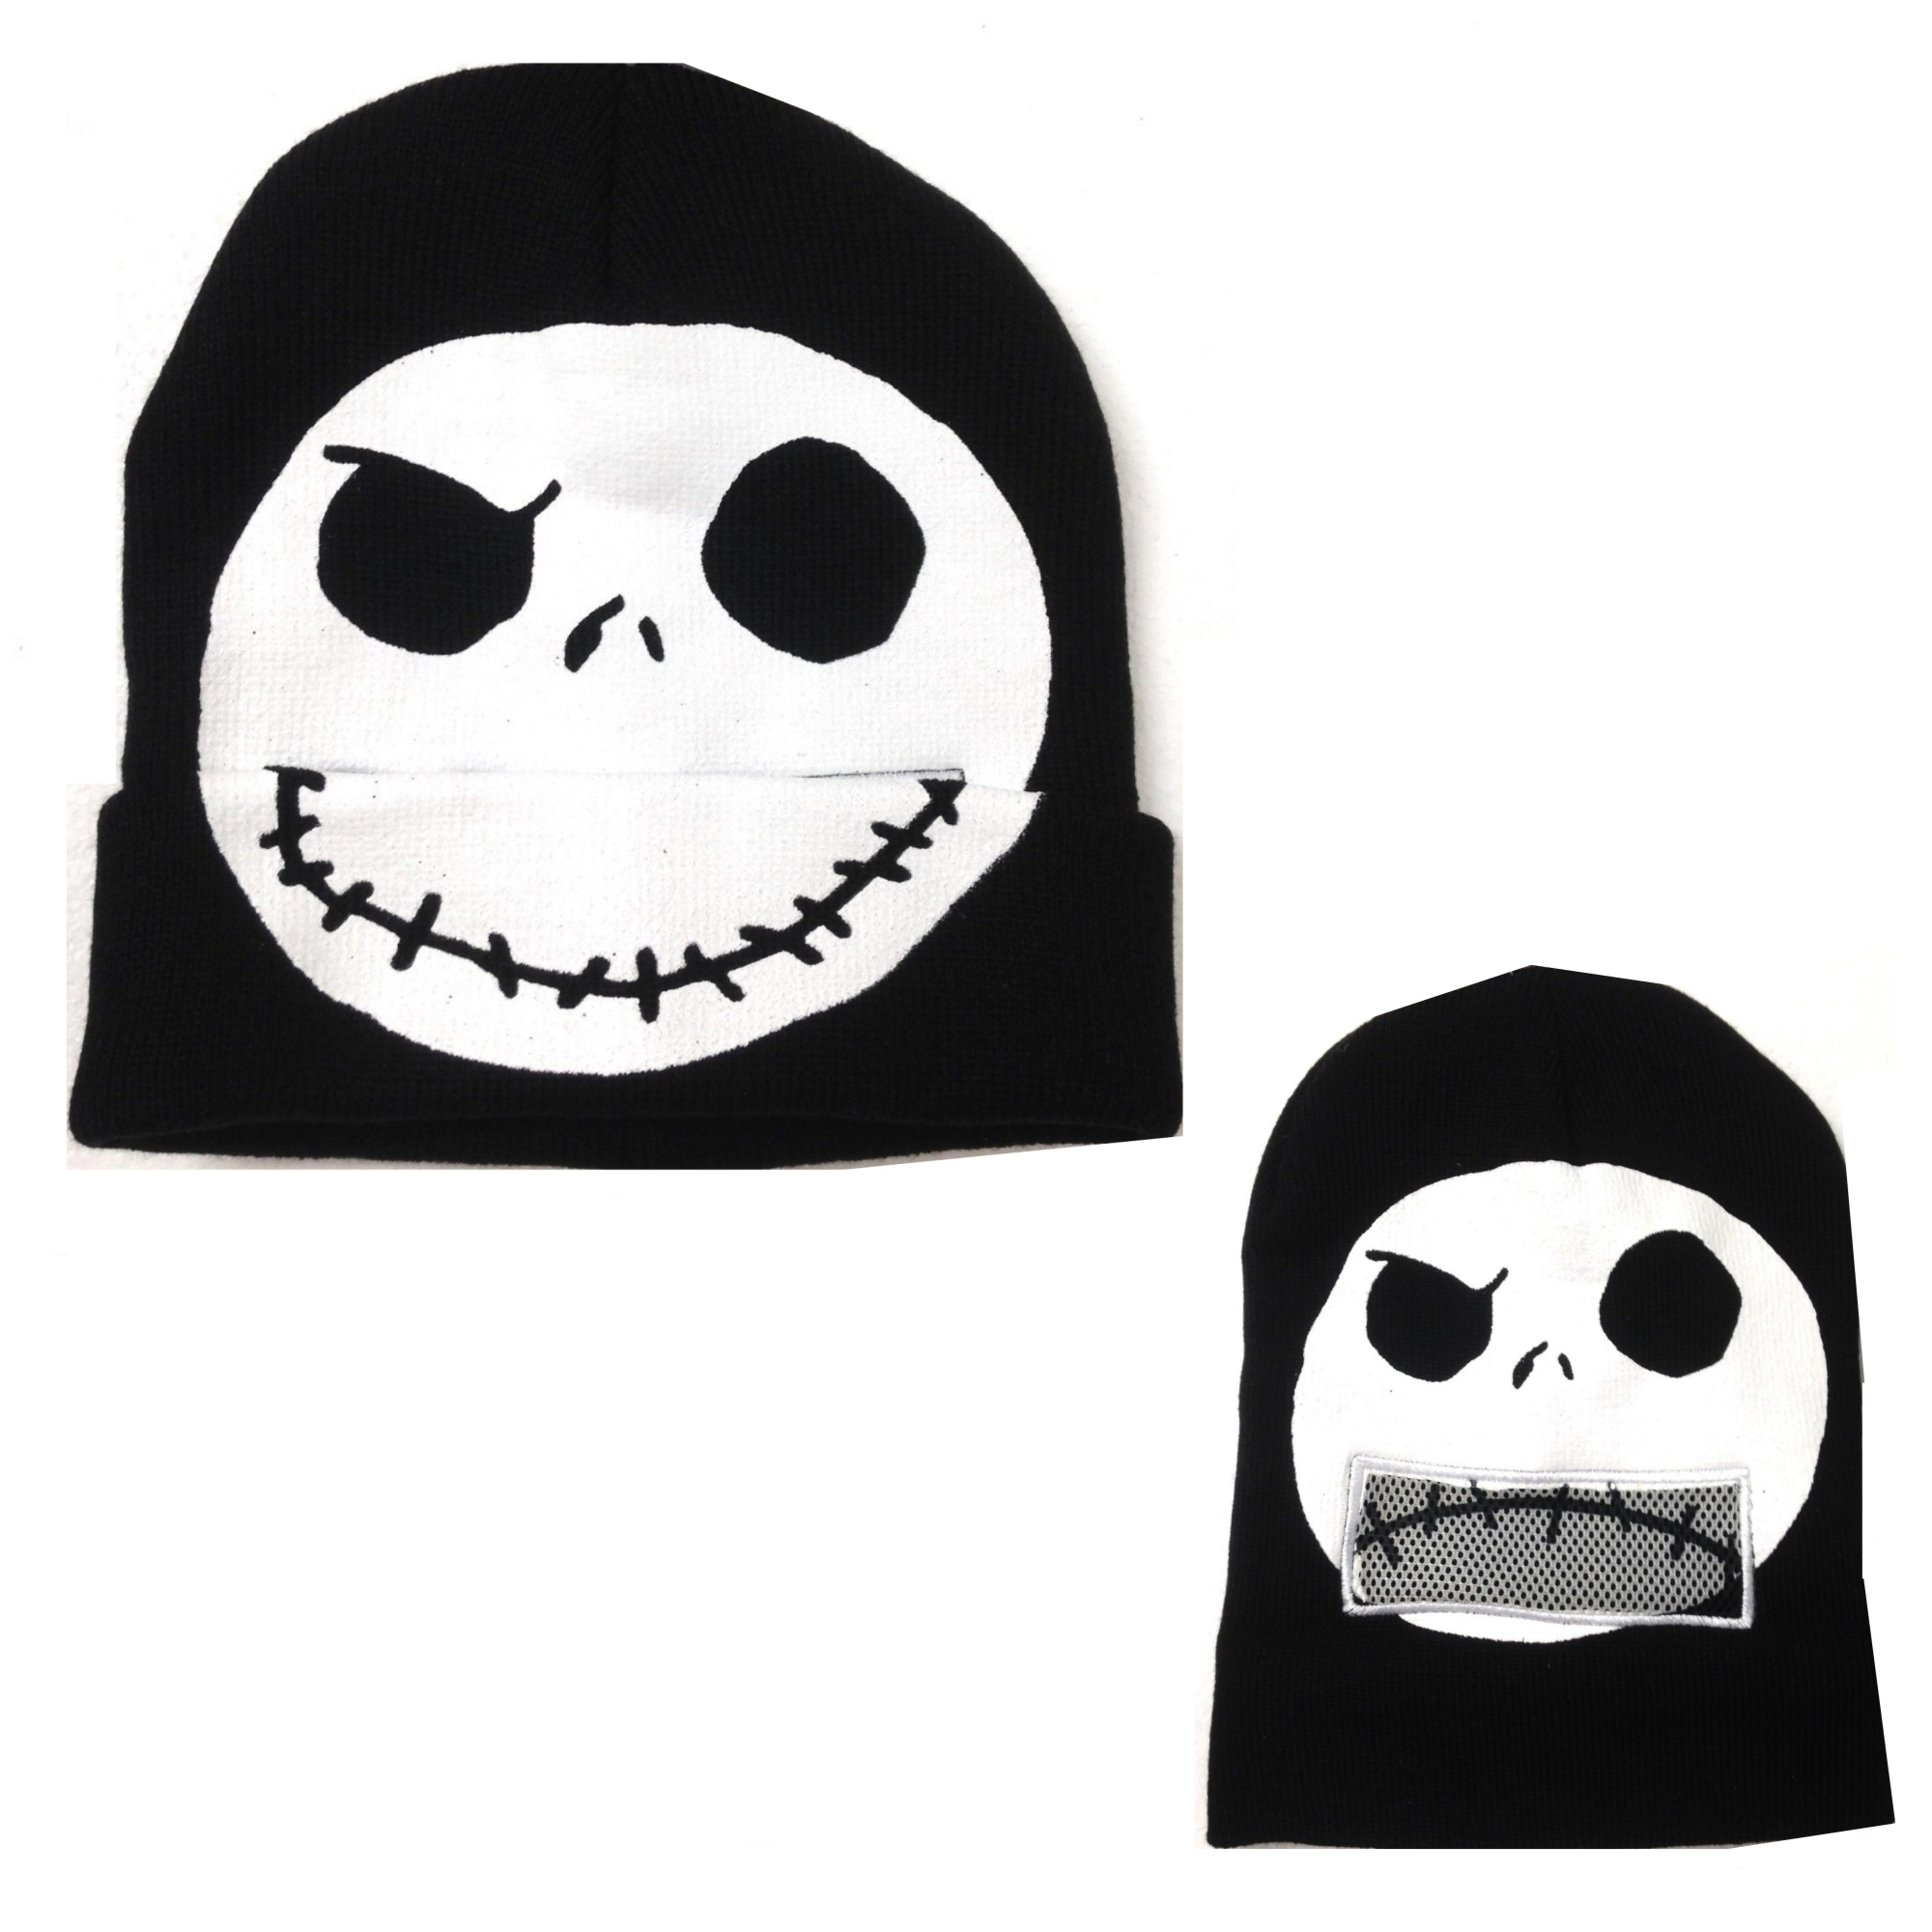 339f40c6bff Disney Nightmare Before Christmas Jack Skellington Flip-Down Beanie ...